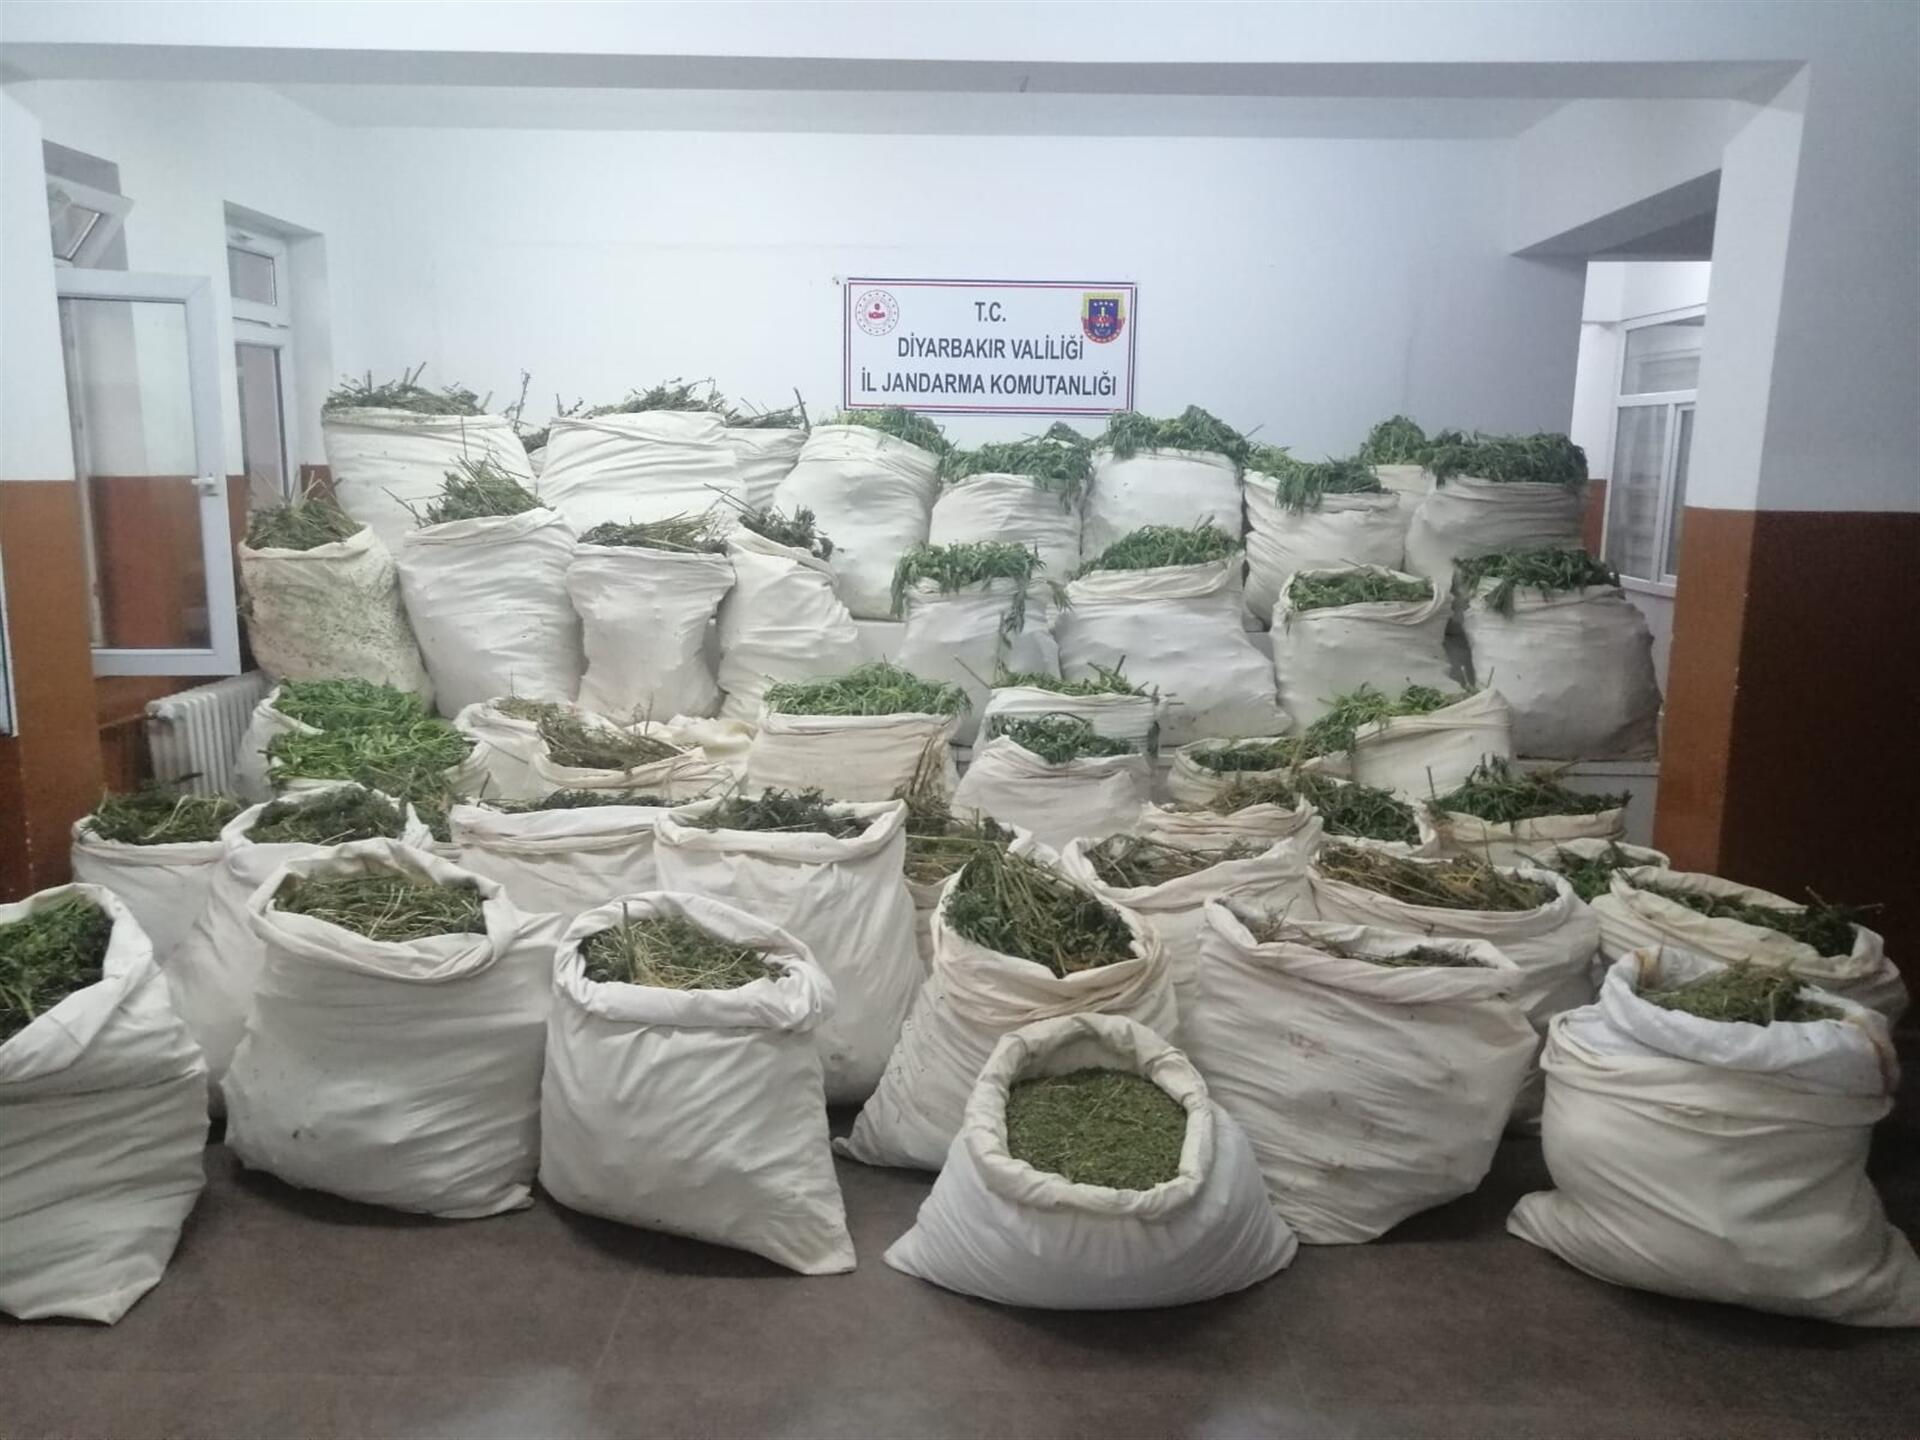 More than 10.1 mln cannabis roots seized in Turkey